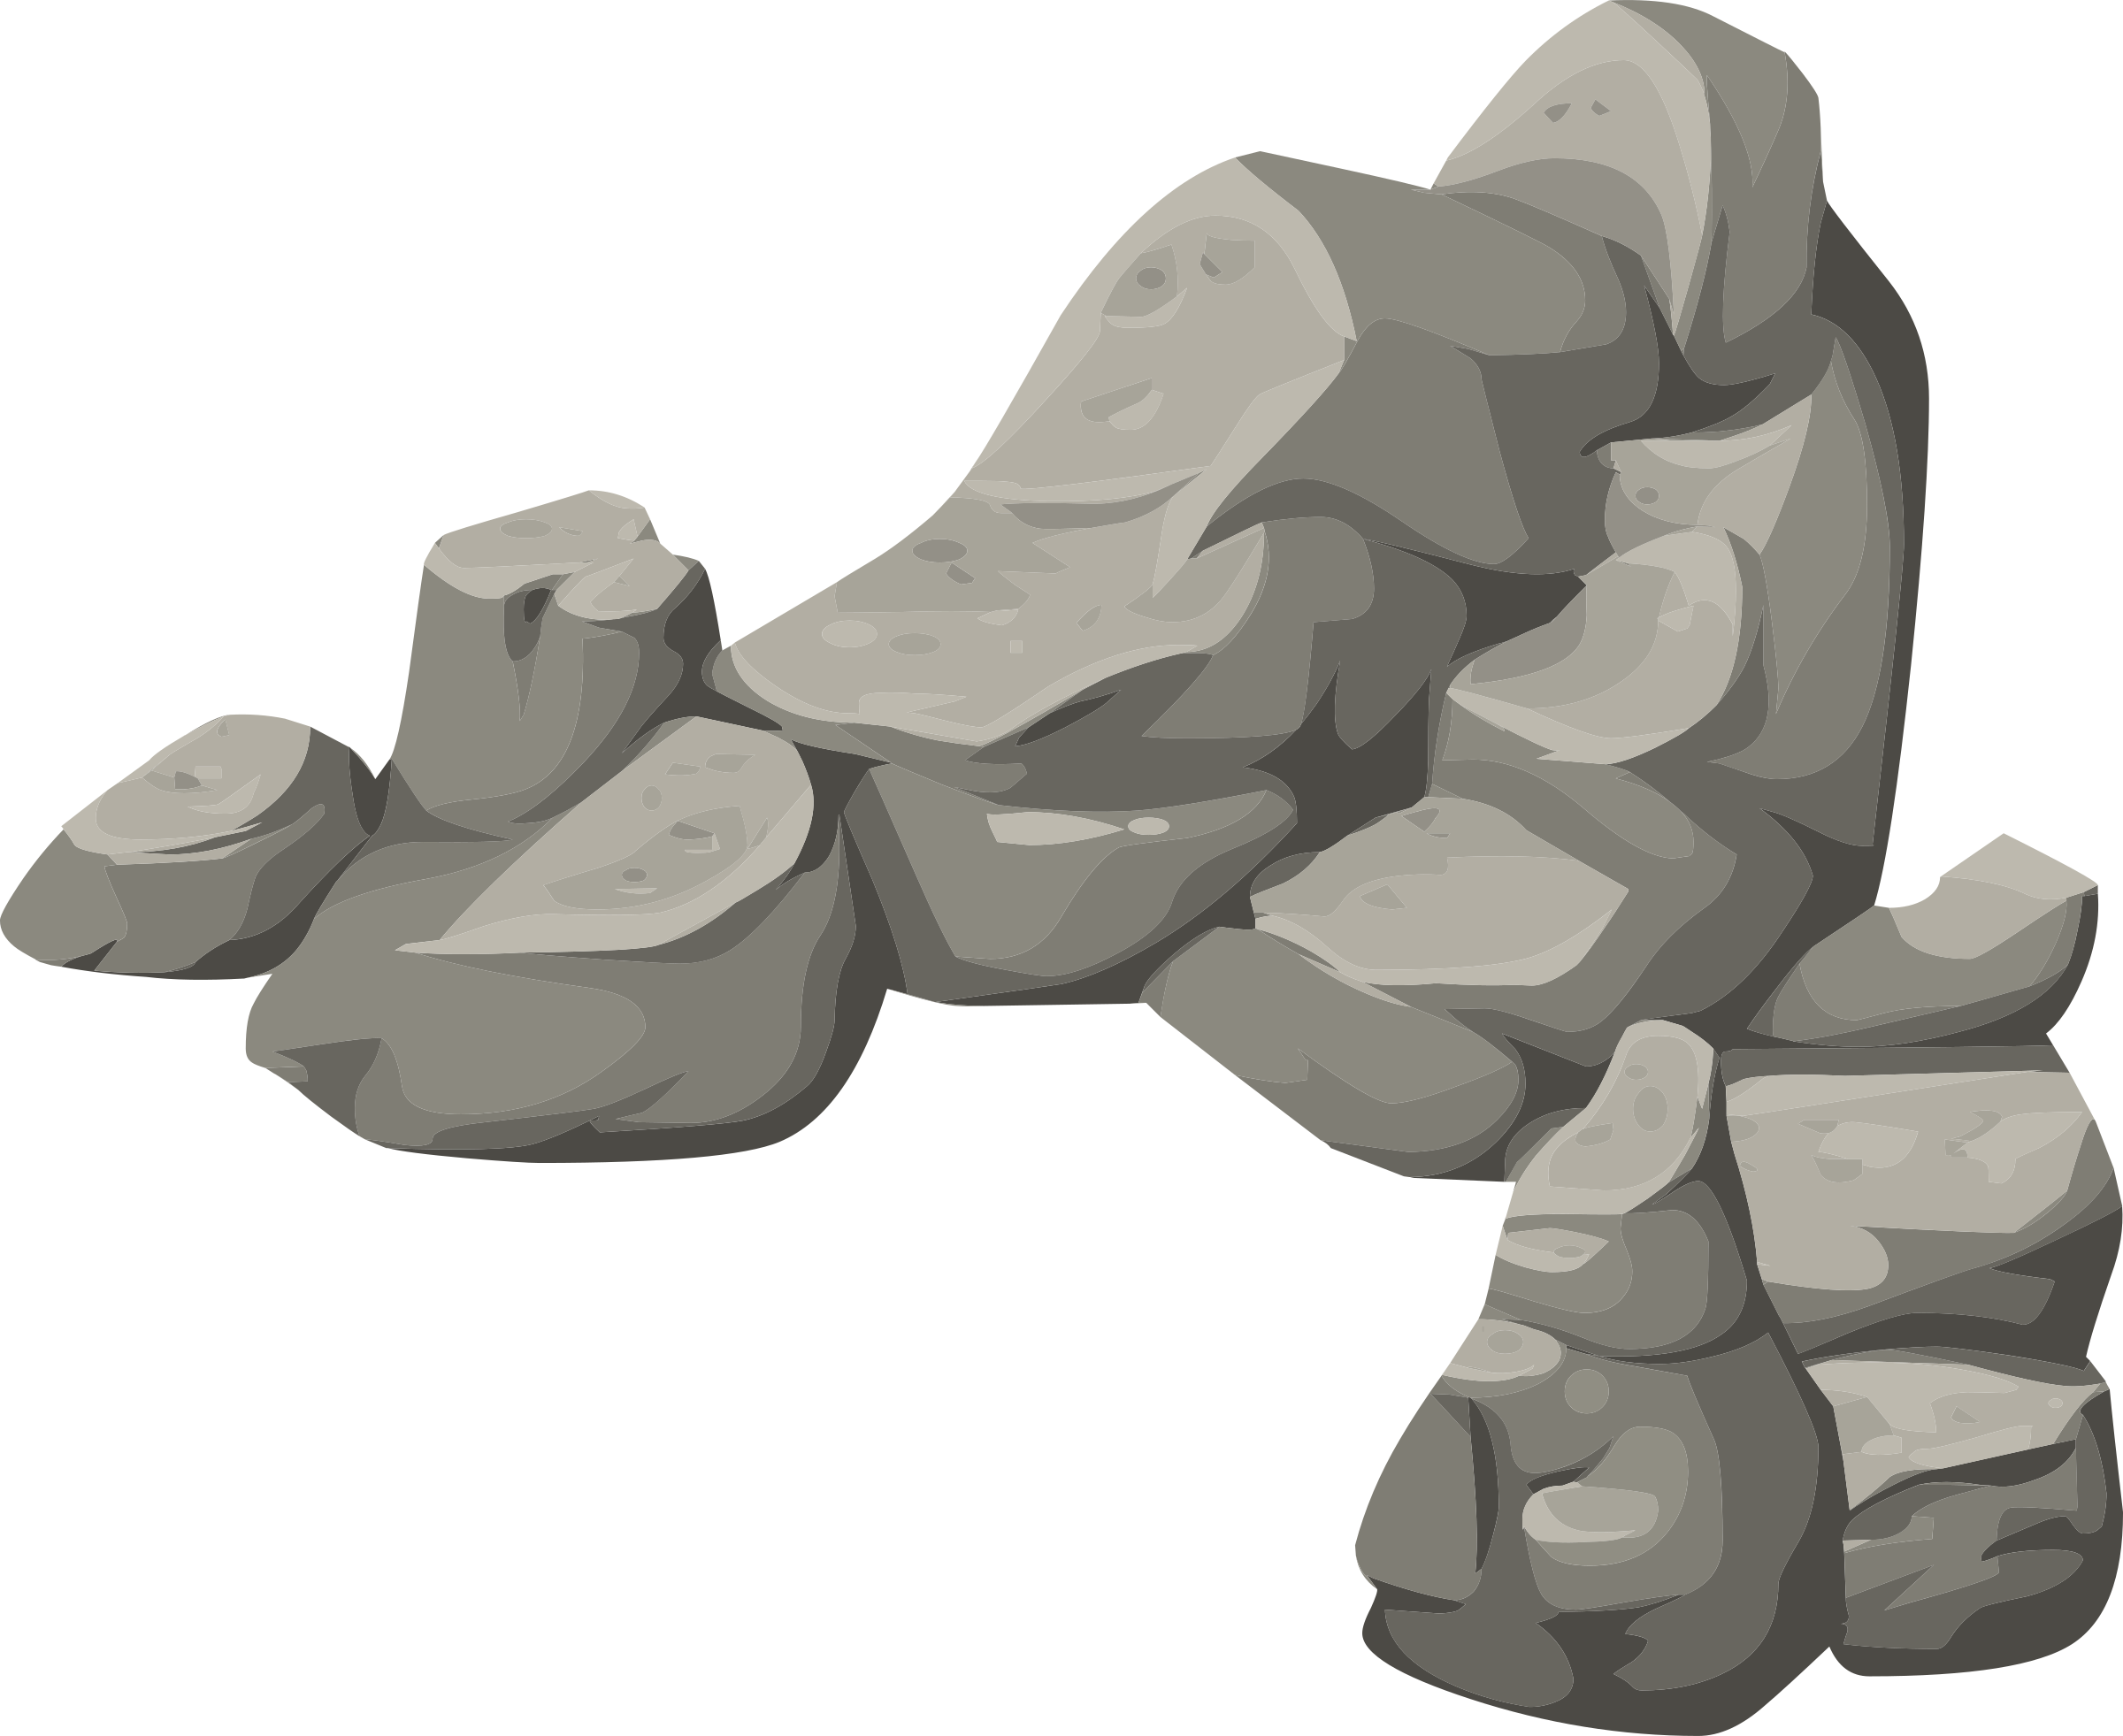 Coal clipart transparent background rock.  collection of drawing